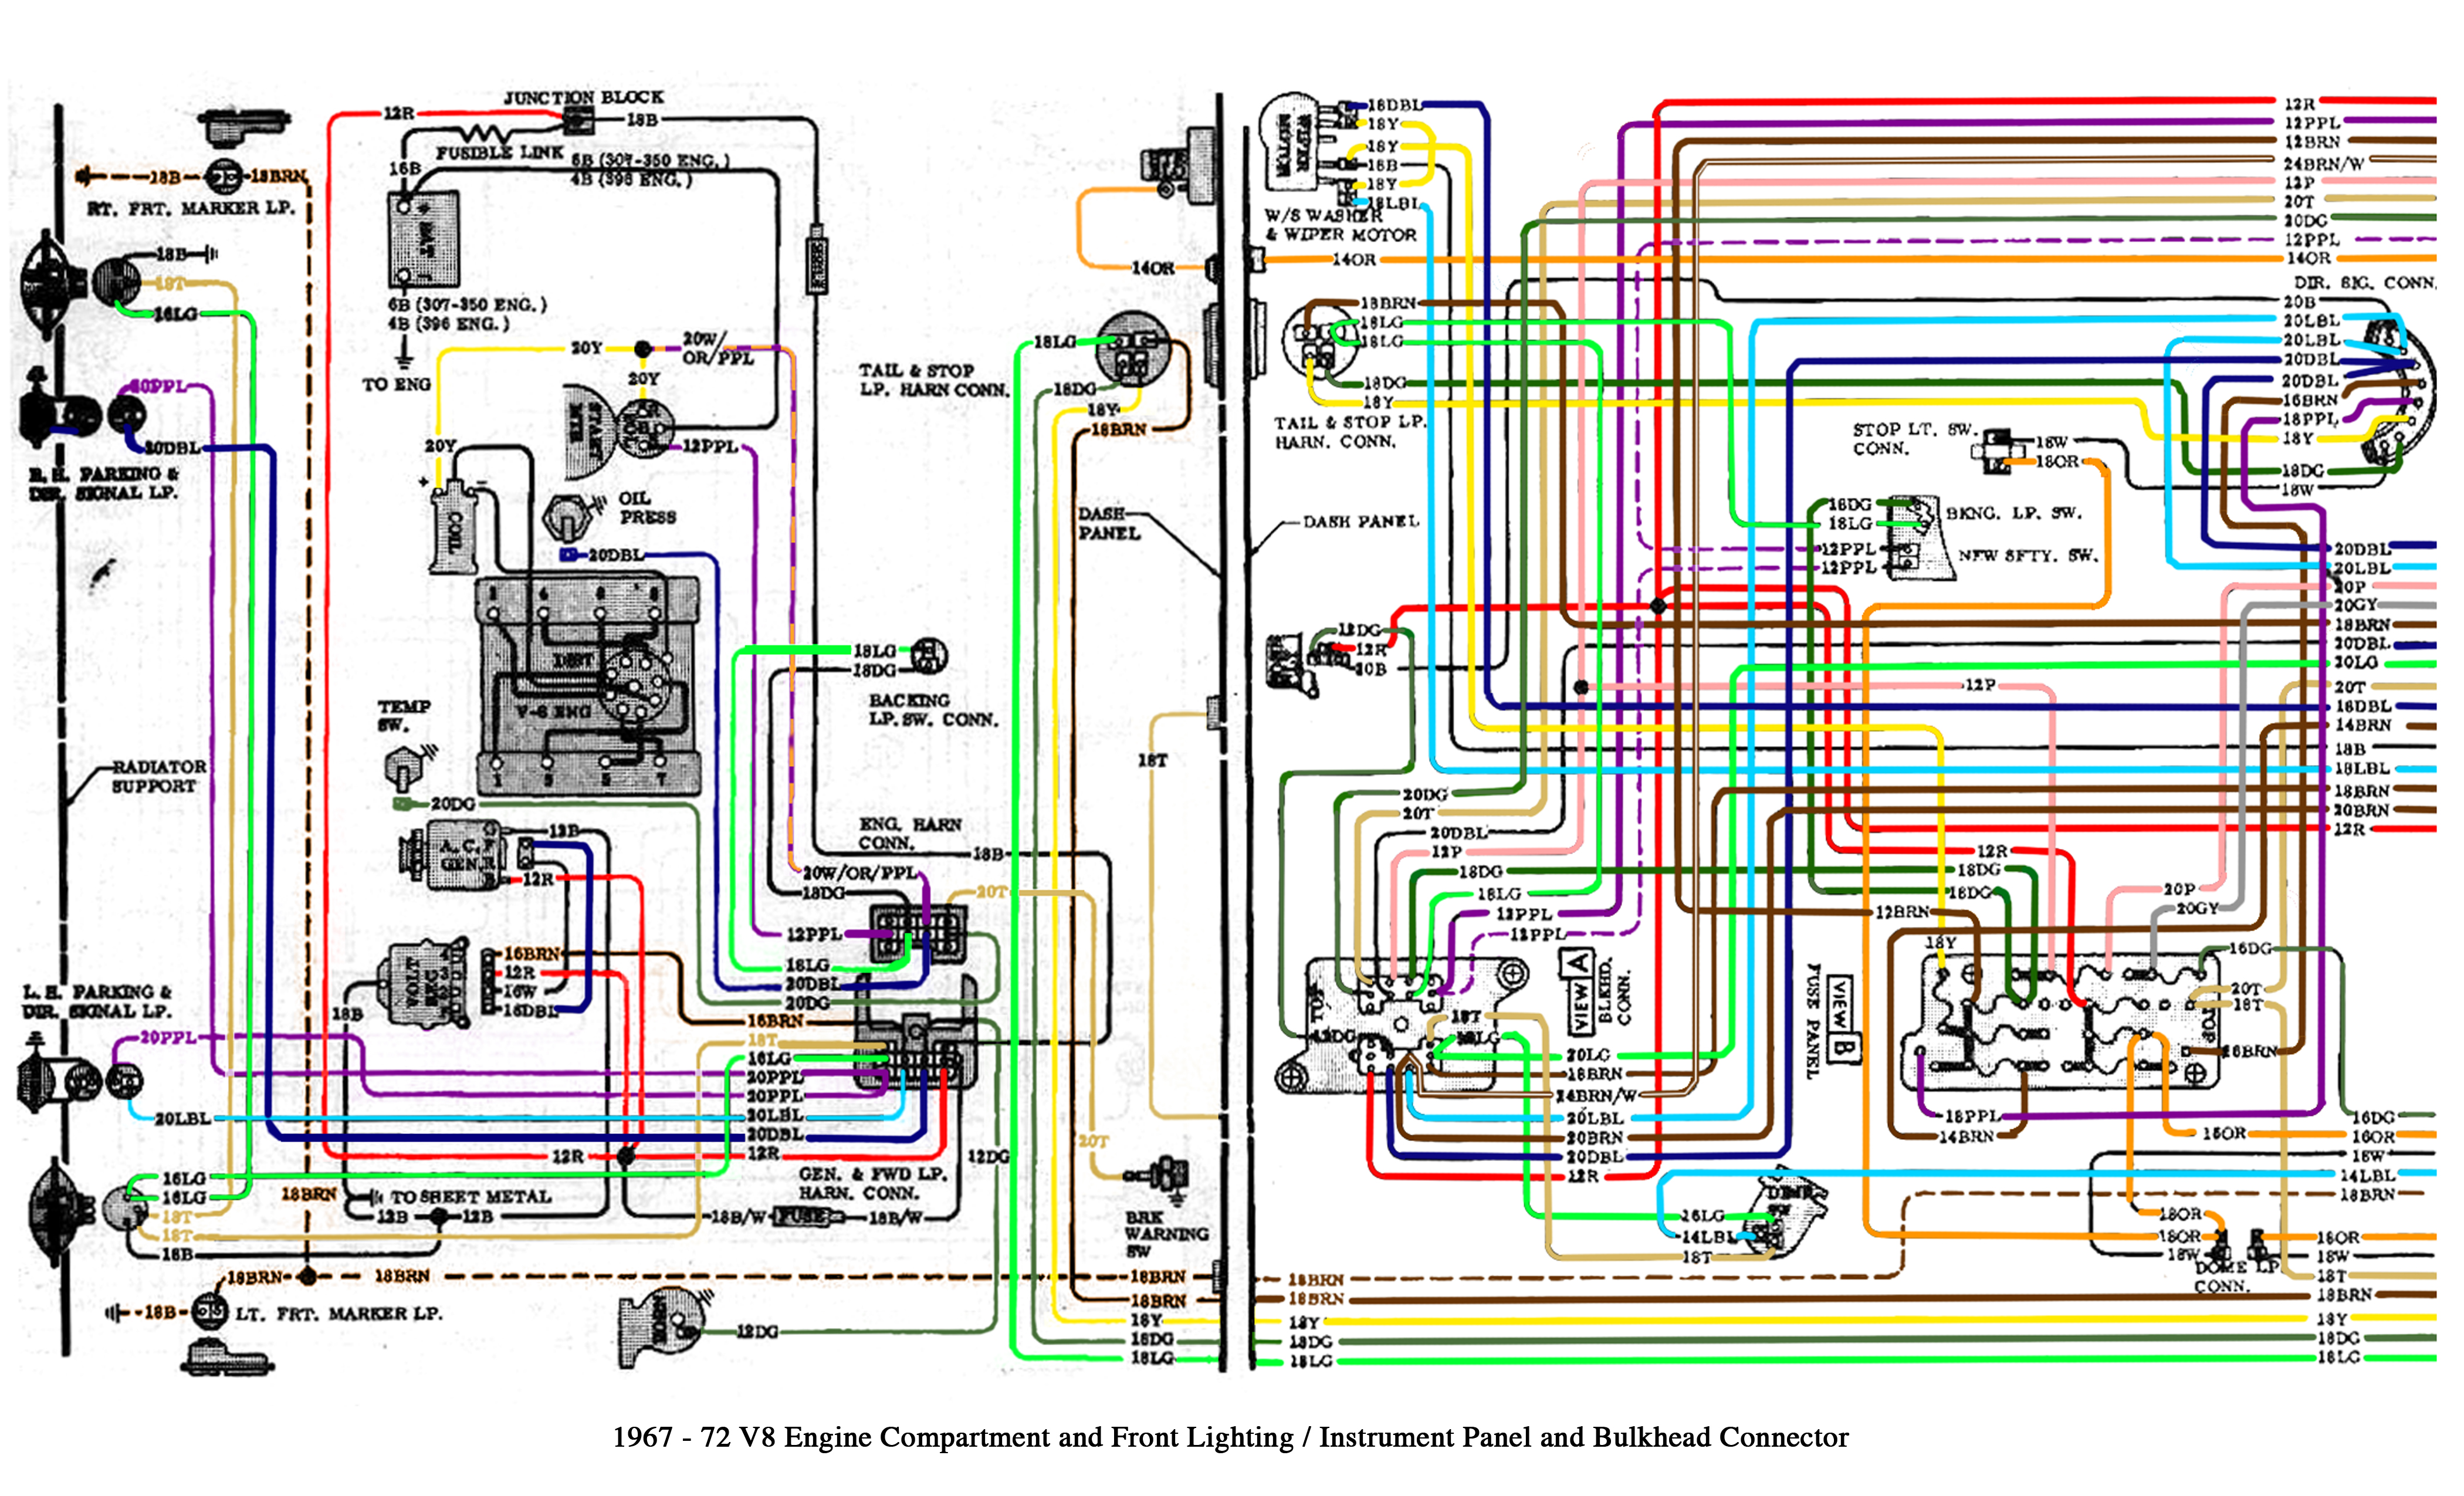 chevrolet c wiring diagram chevrolet wiring diagrams online 4200x2550 chevrolet c wiring diagram